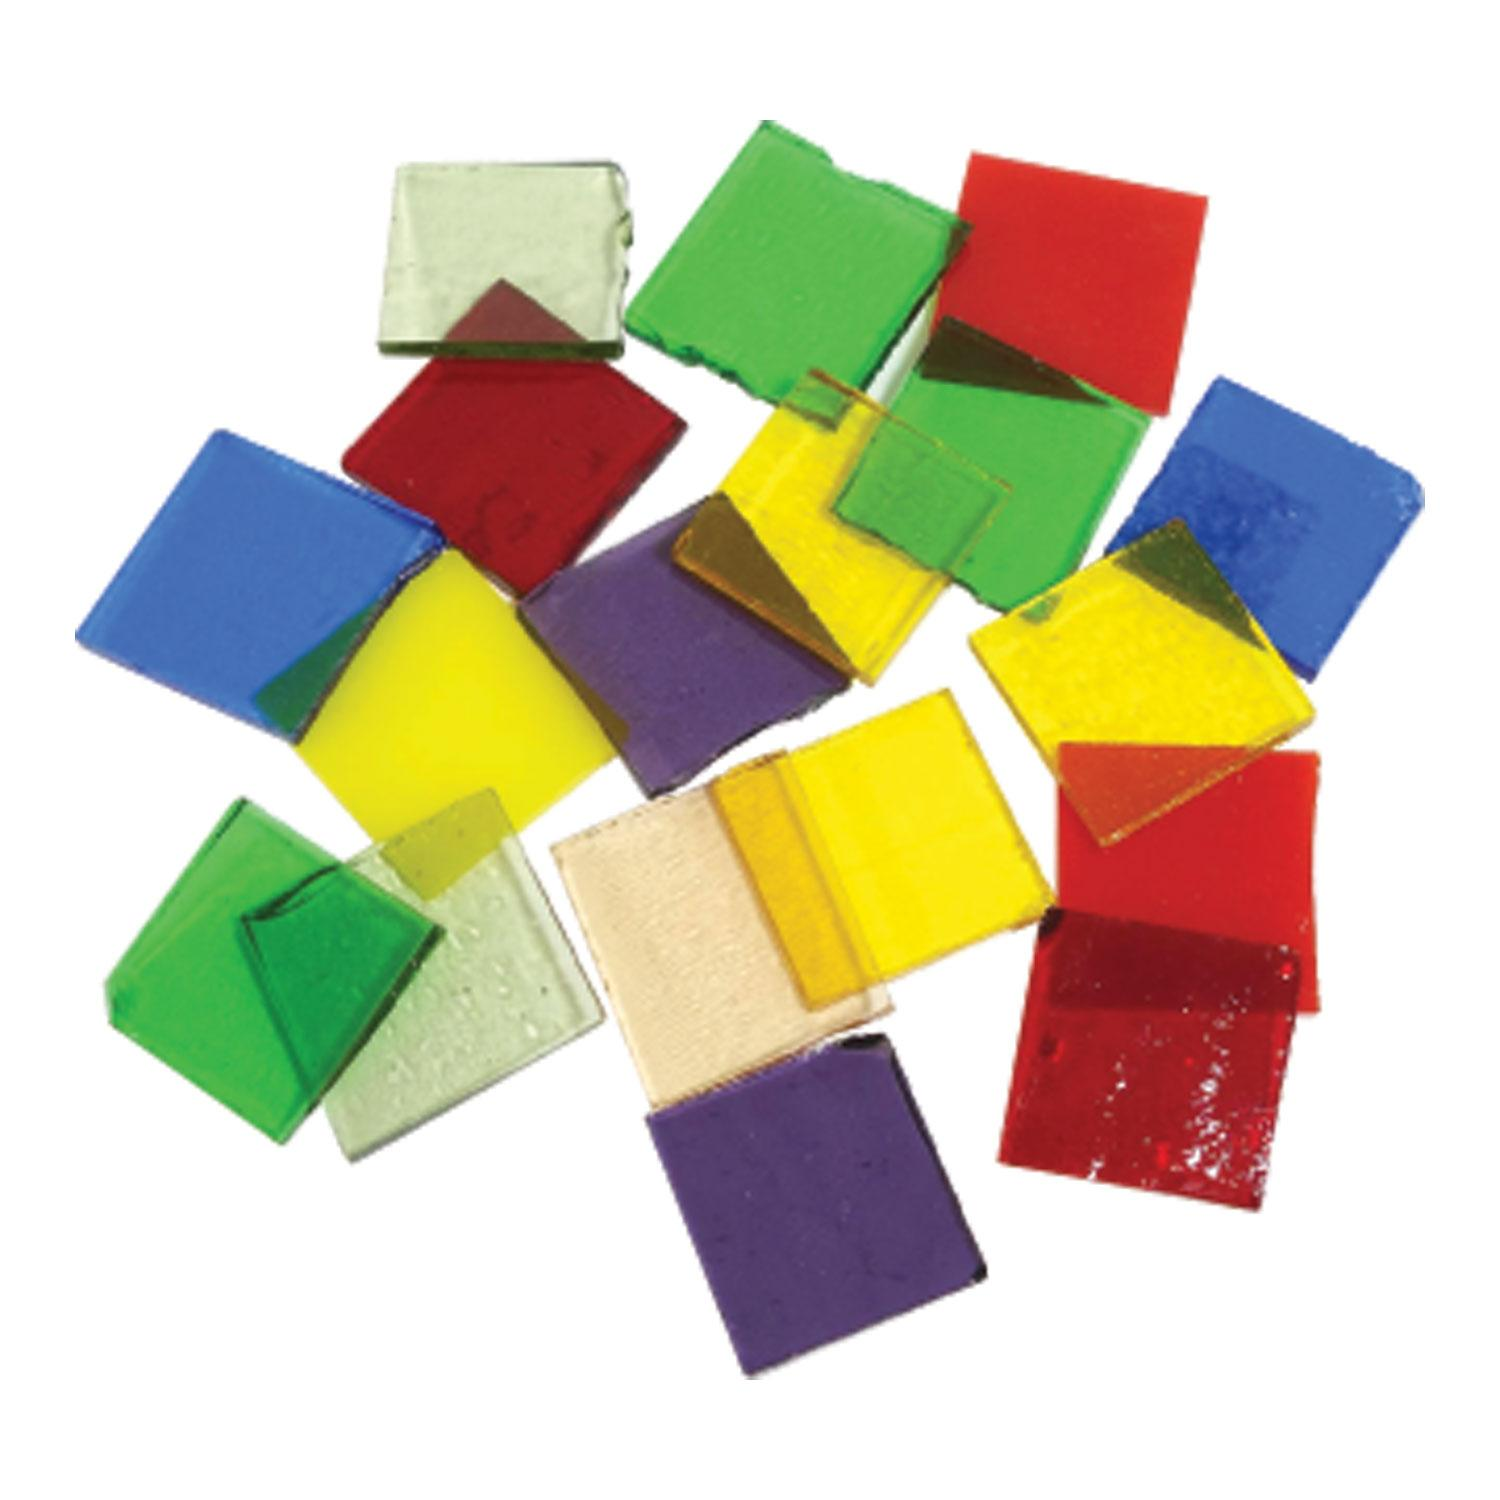 Fuseworks Variety Colors Squares 18 Piece Assortment - 90 COE